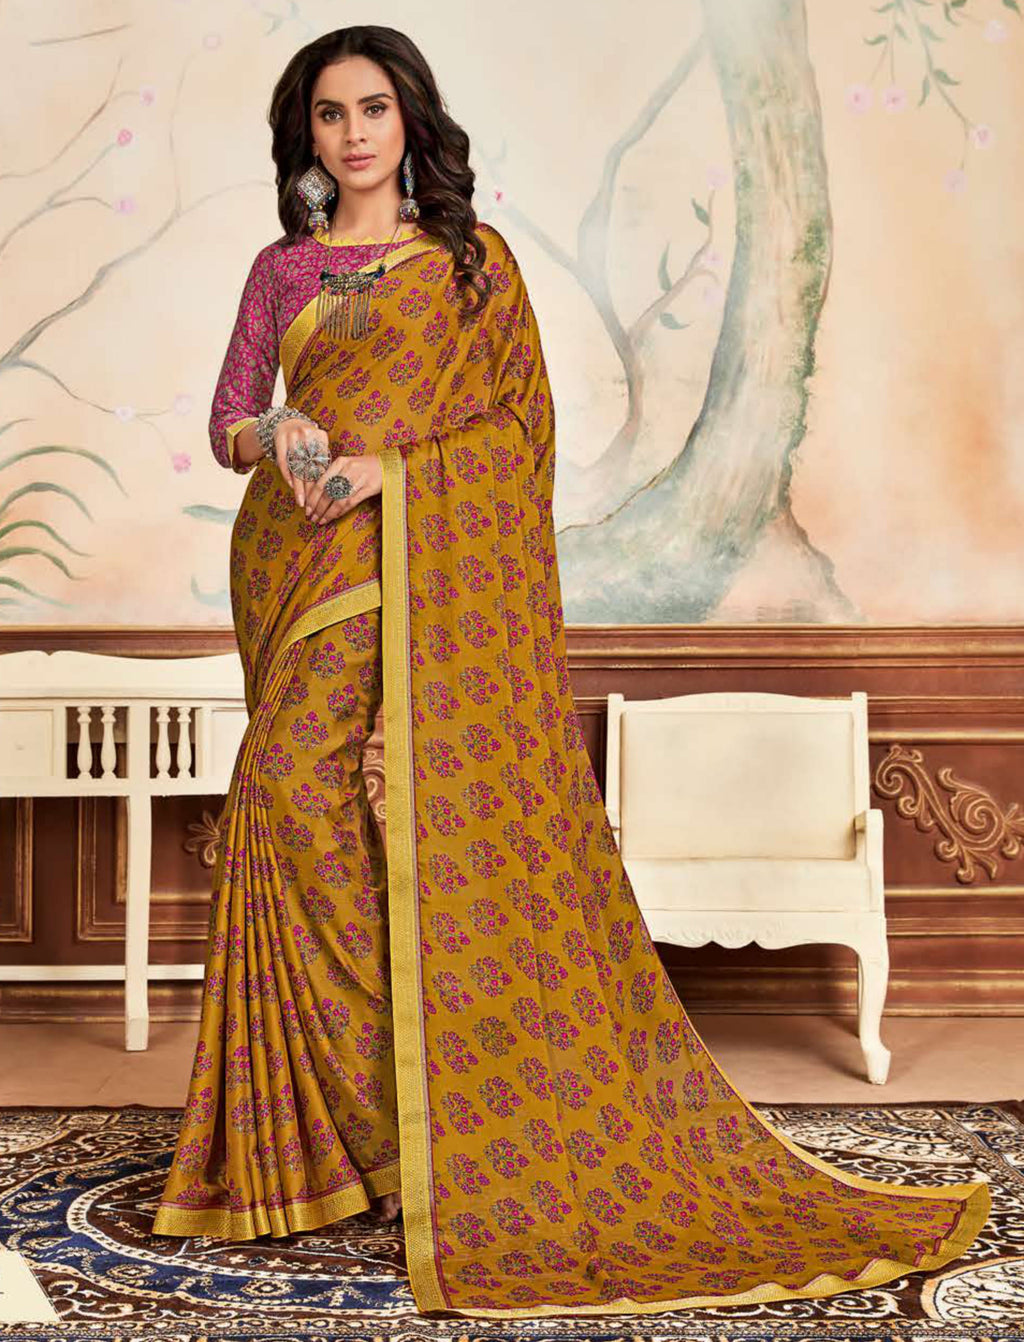 Mustard Yellow Color Crepe Chiffon Casual Party Sarees NYF-8589